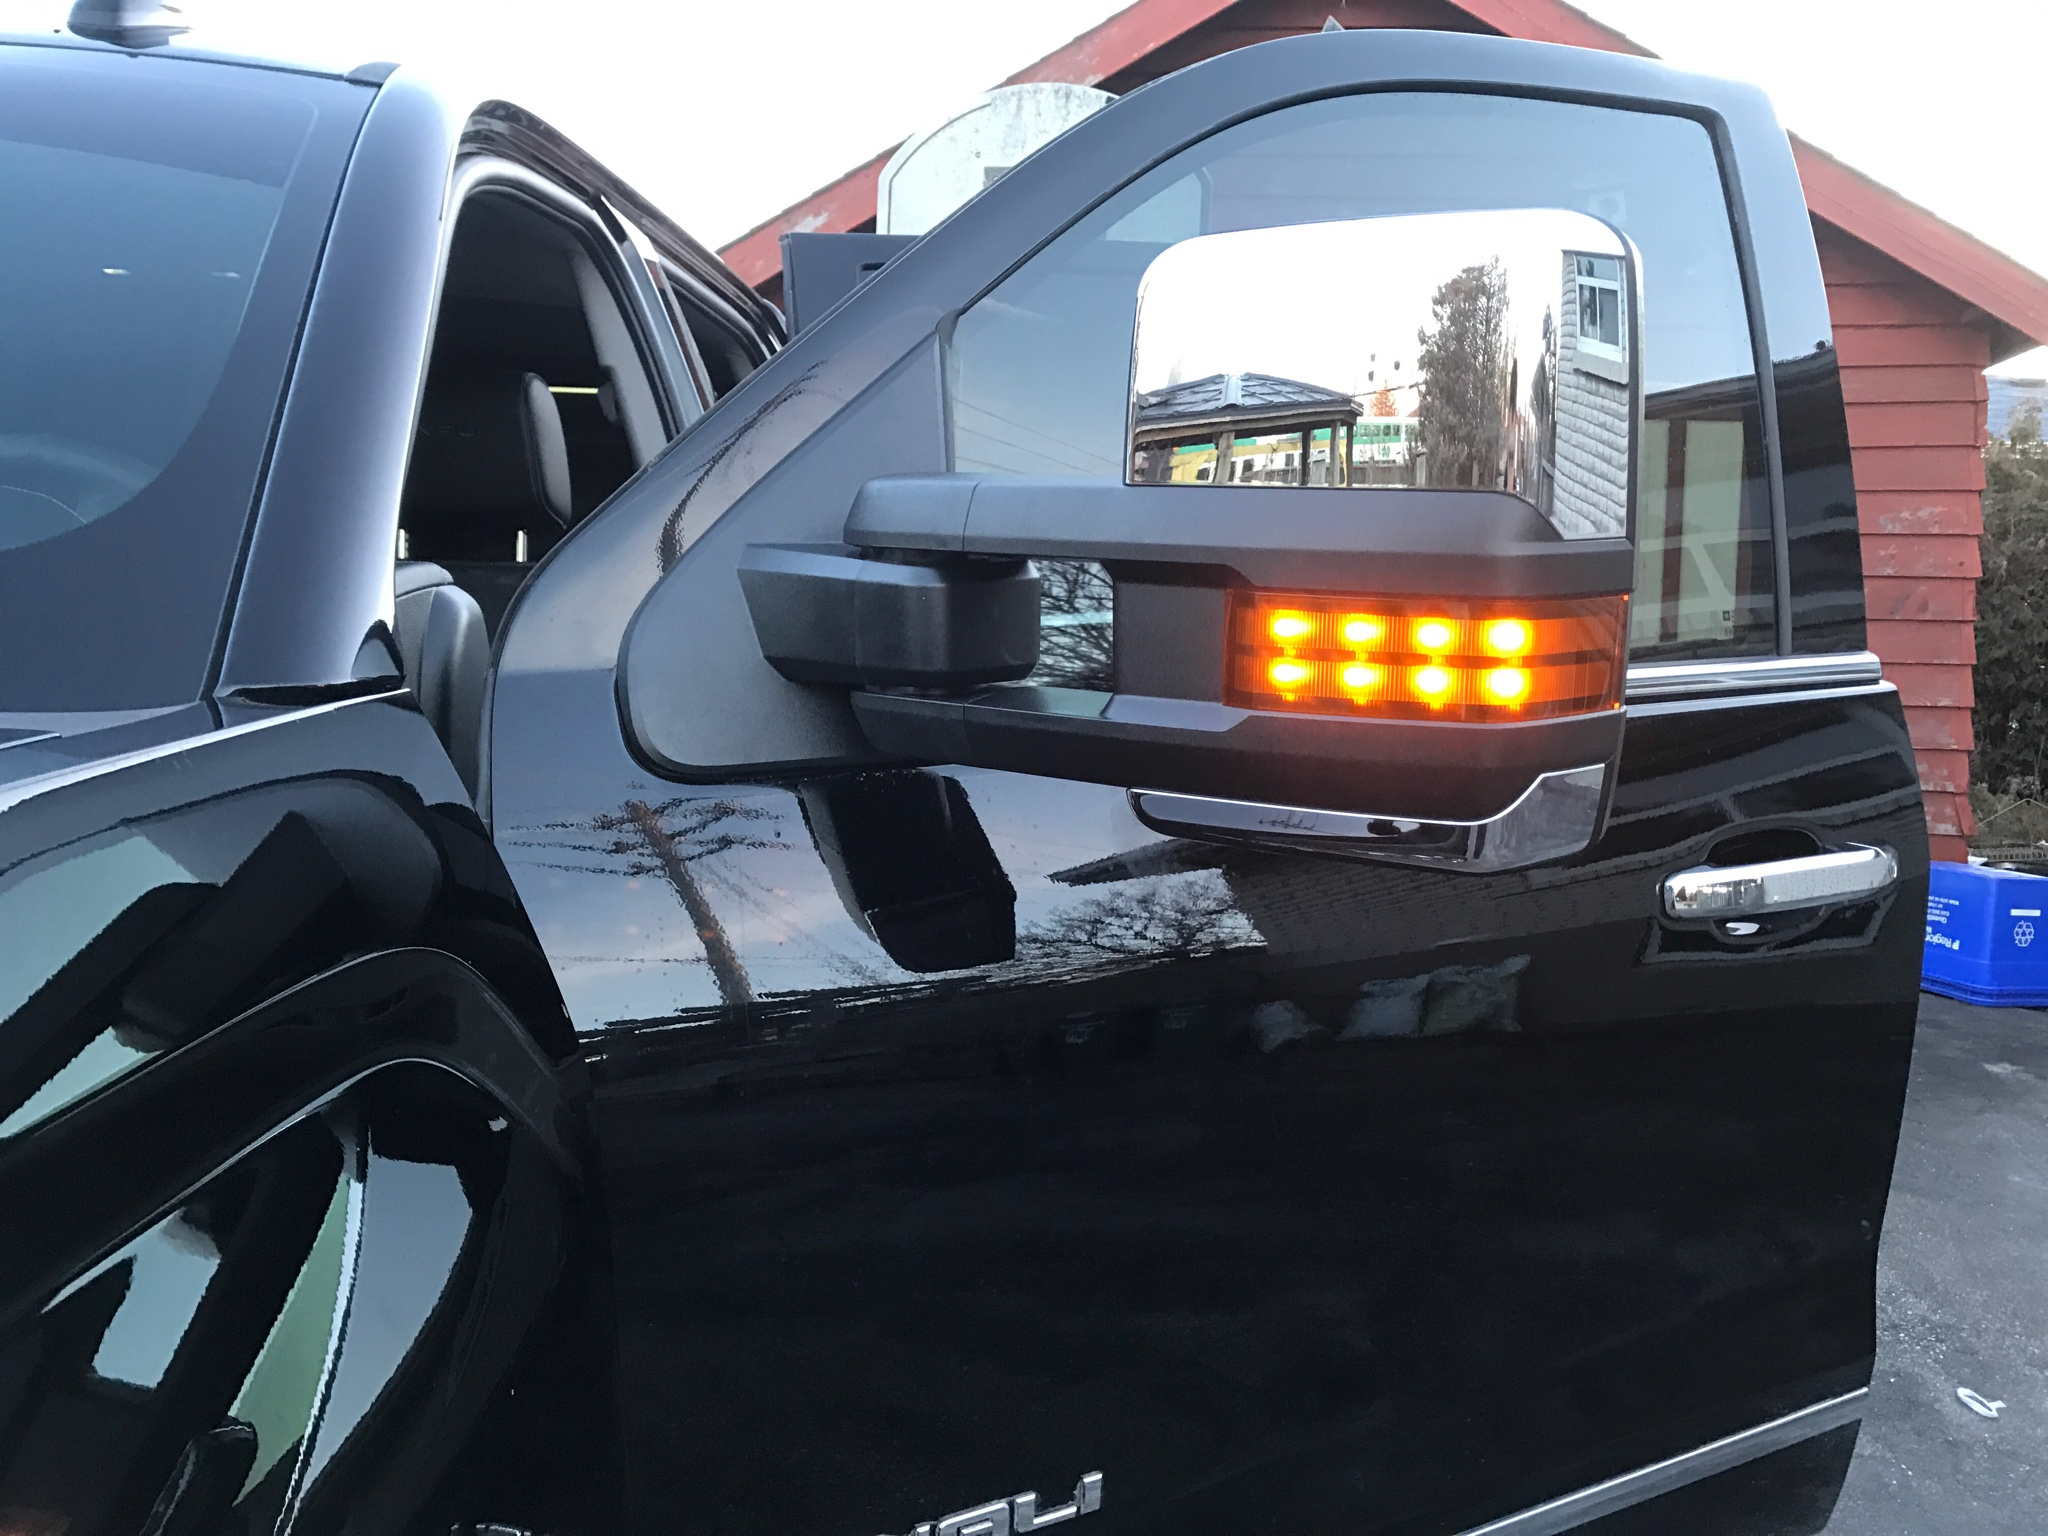 2014 2017 Dl8 Dl3 Towing Mirror Upgrade Mirrors Explained Chevrolet Tahoe Trailer 7e14fd3f6846dcd1f7a372f297d63b90